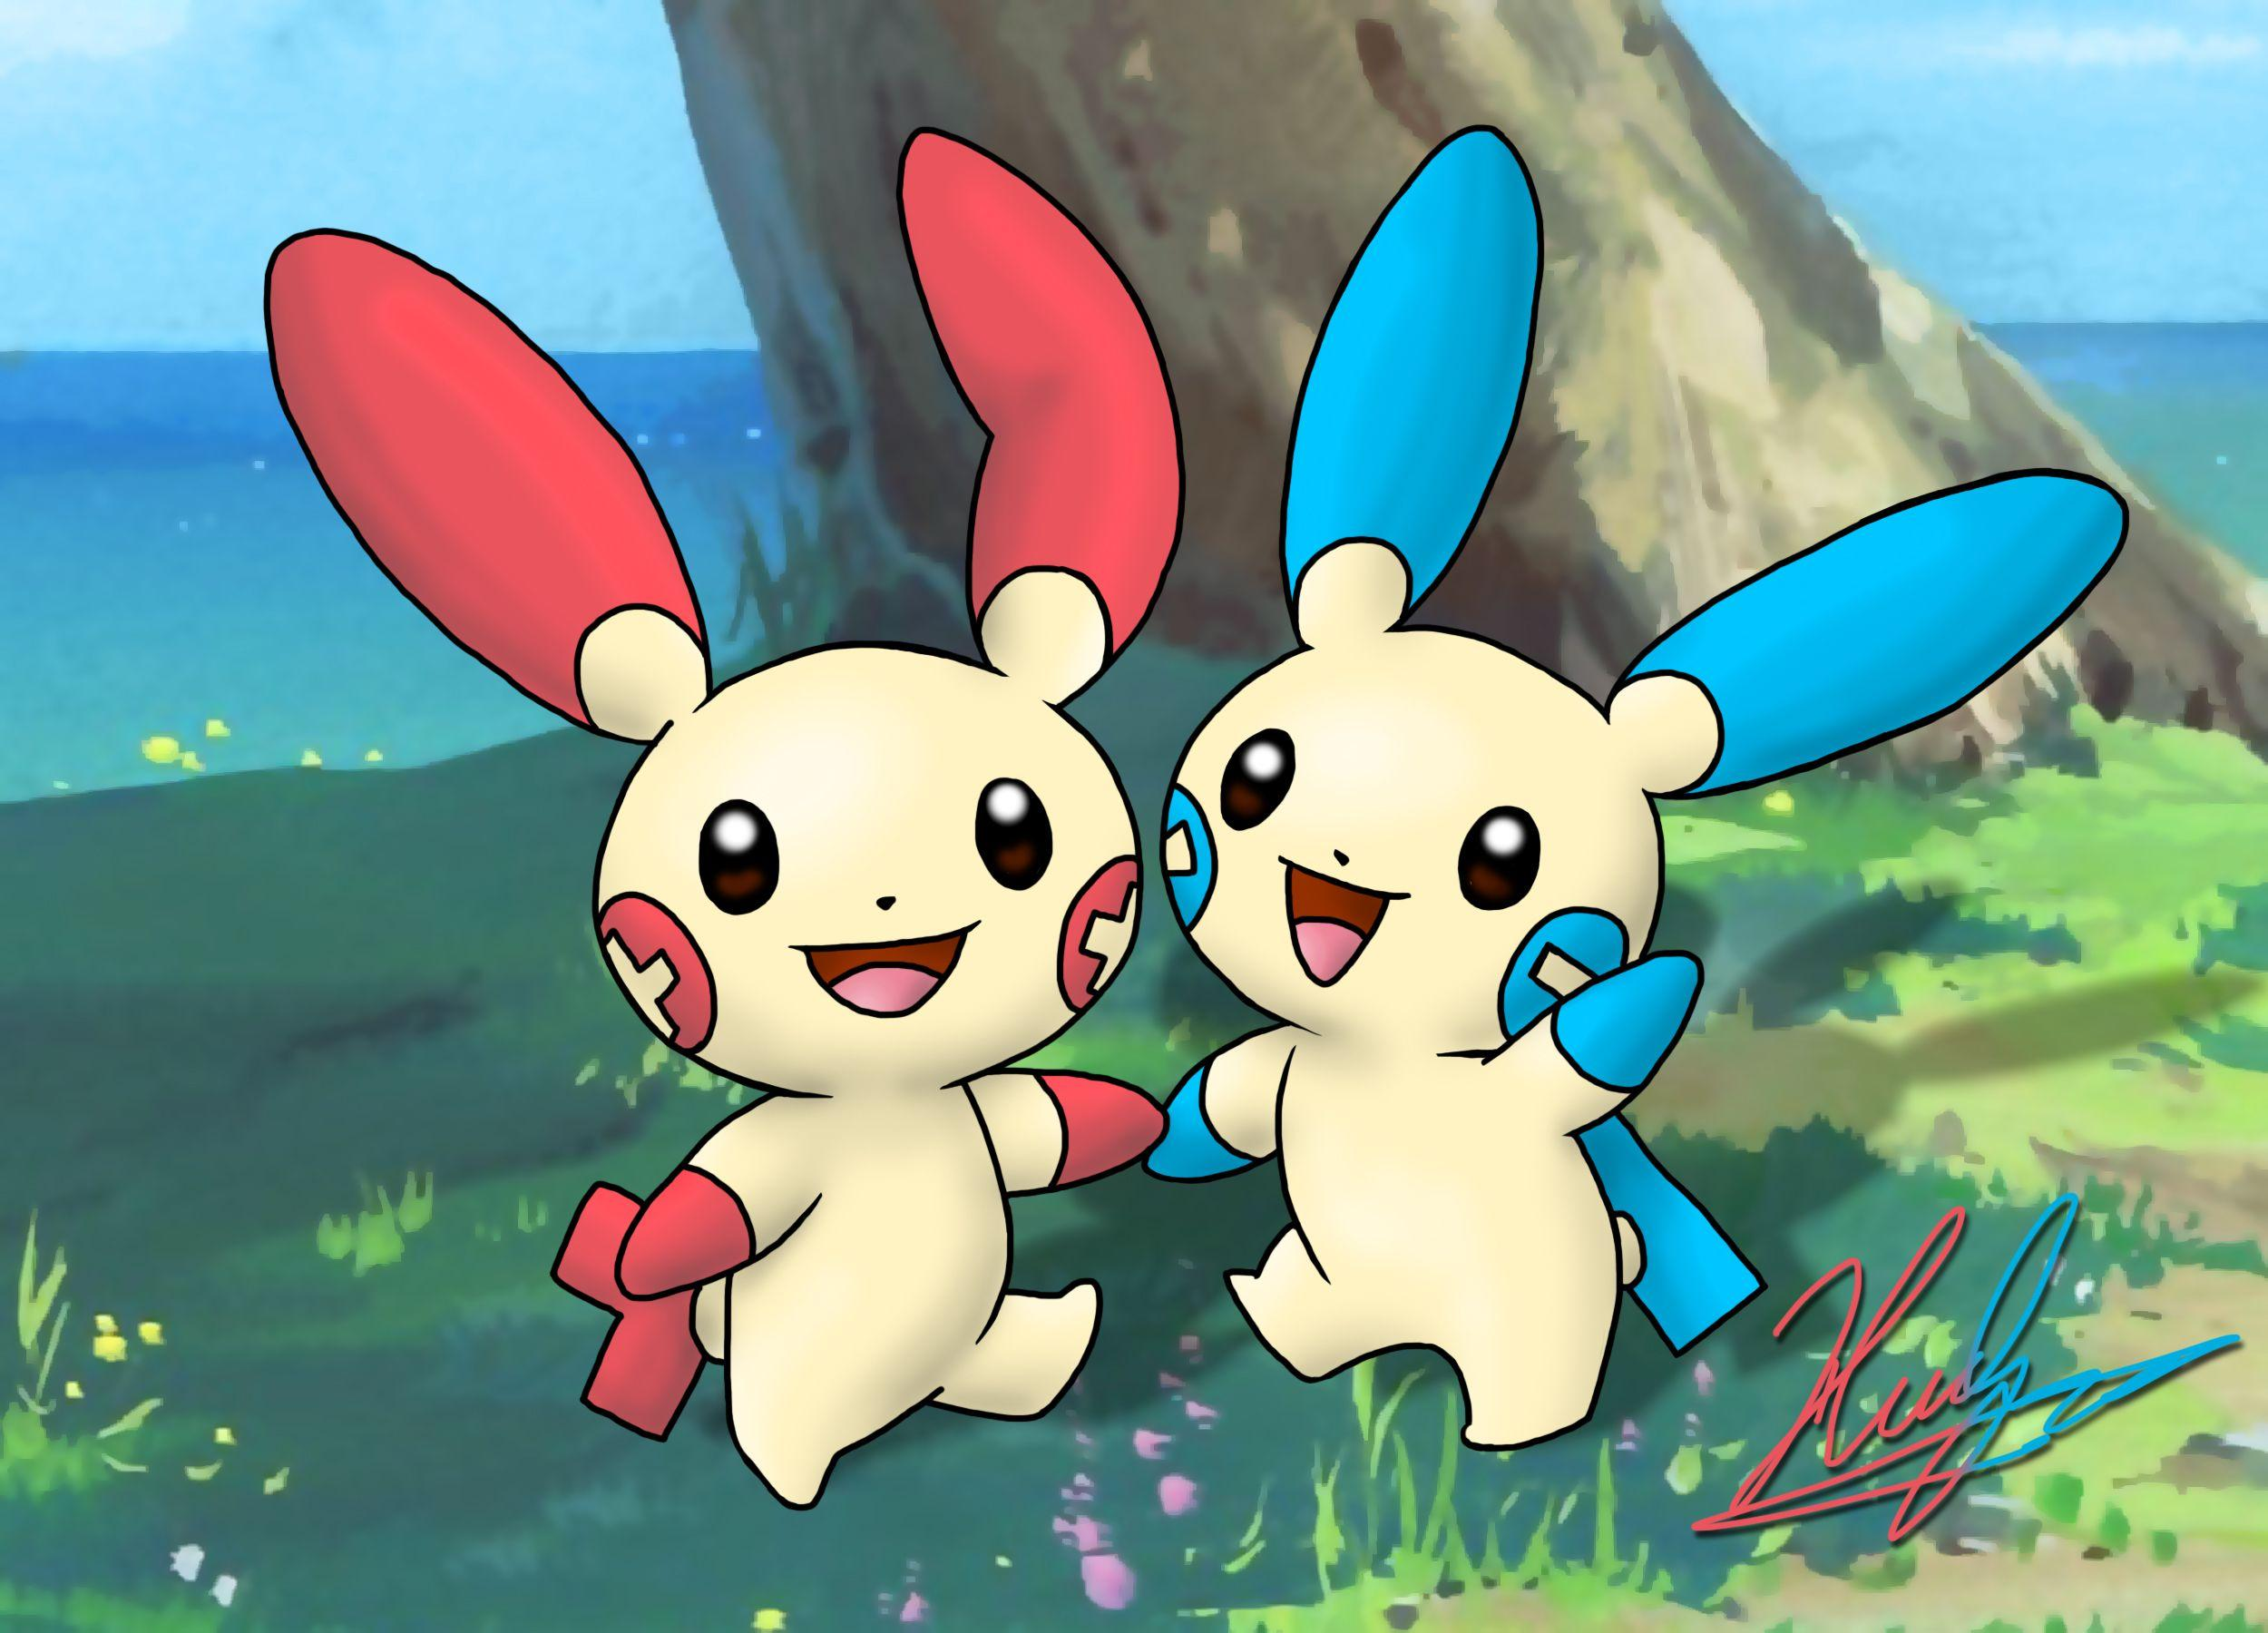 311-312 - Plusle and Minun by neoyurin on DeviantArt